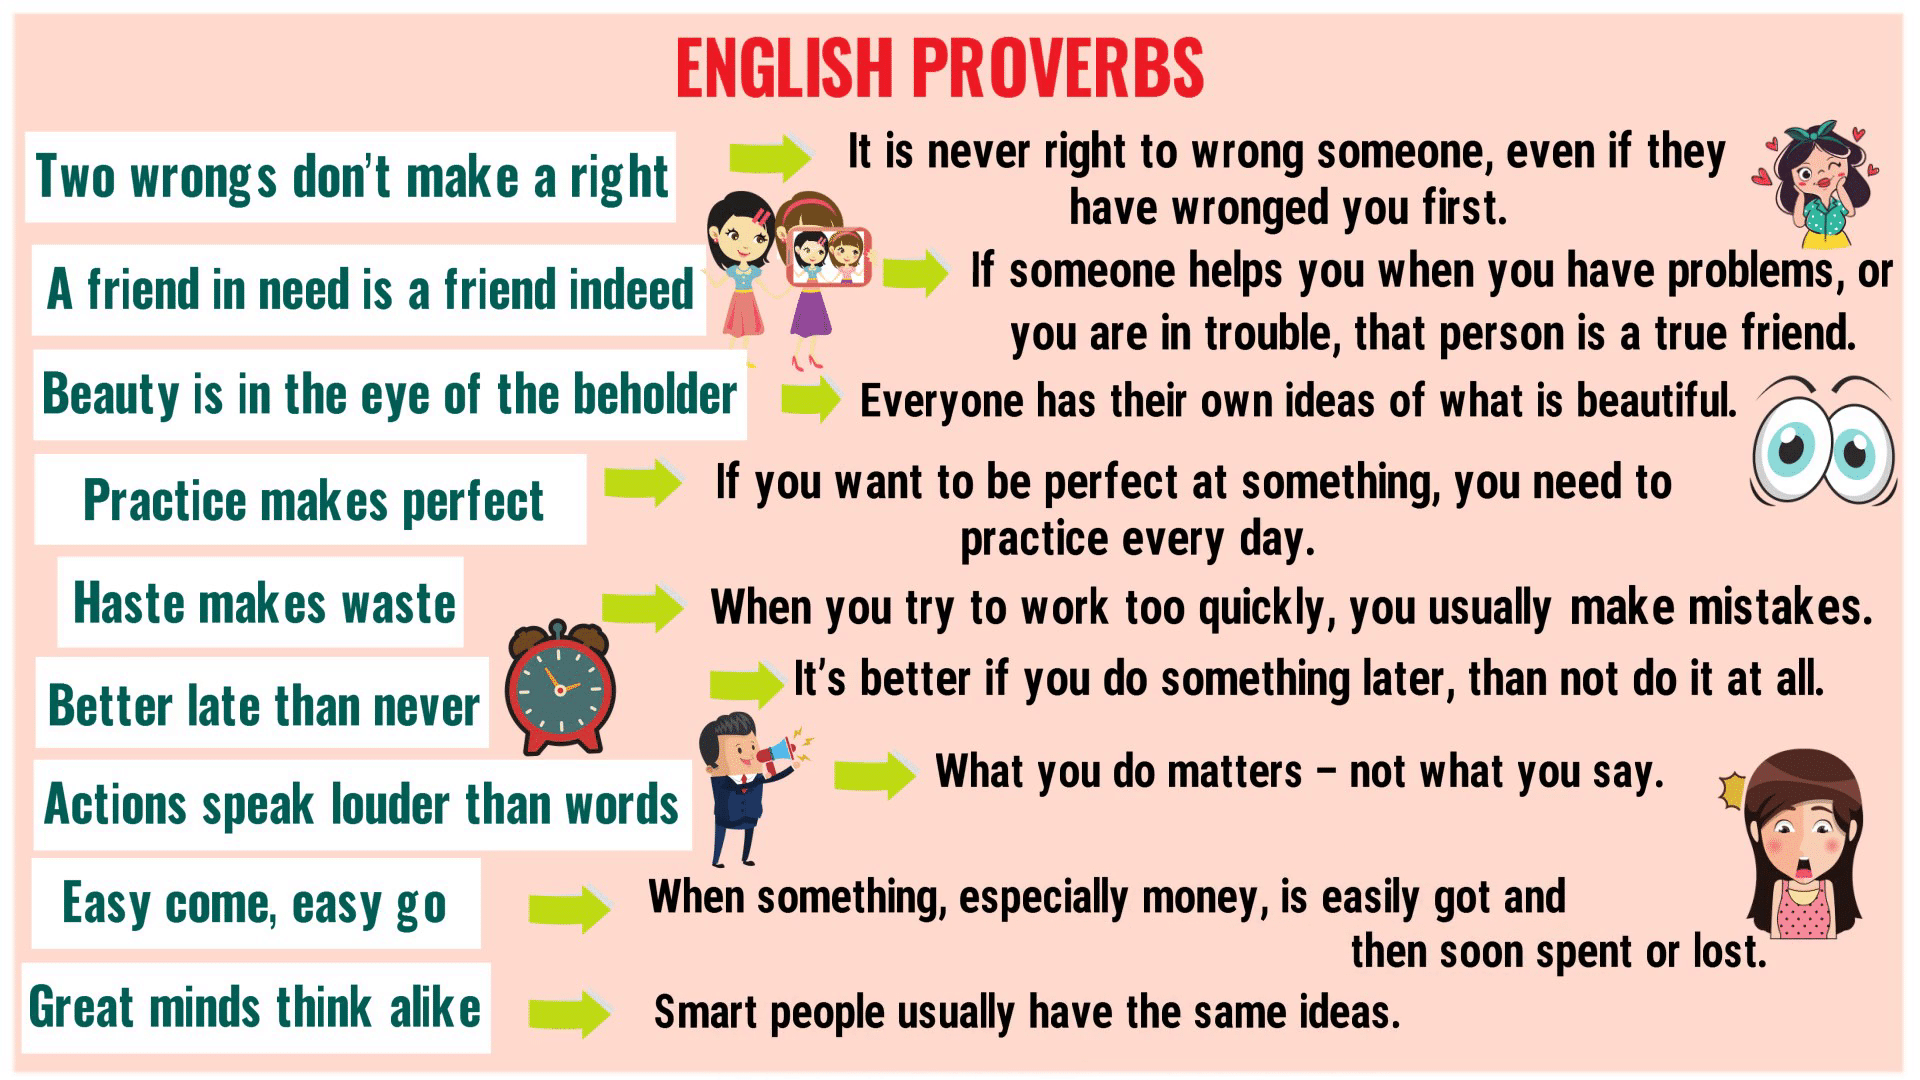 English Proverbs: Top 30 Famous Proverbs and Their Meanings!